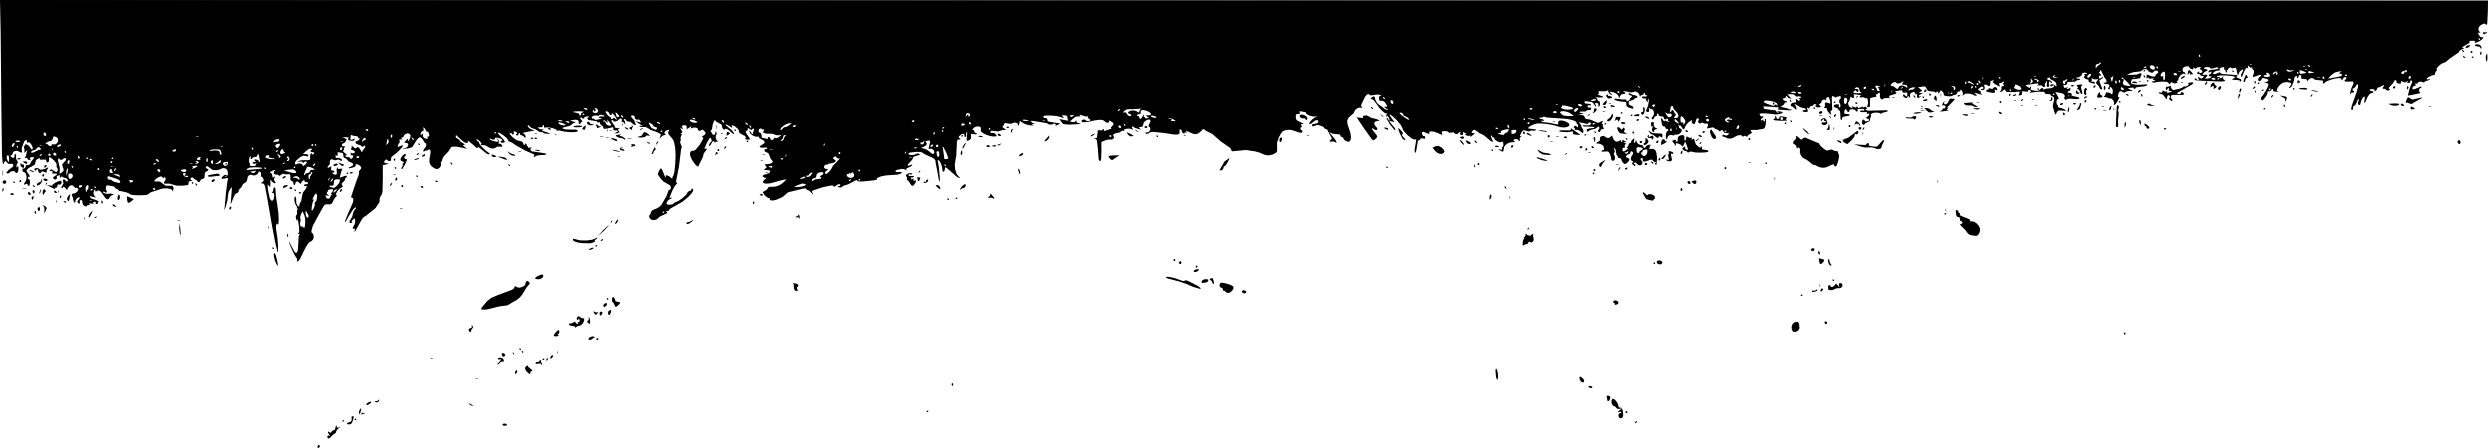 Grunge vector png. Border transparent onlygfx